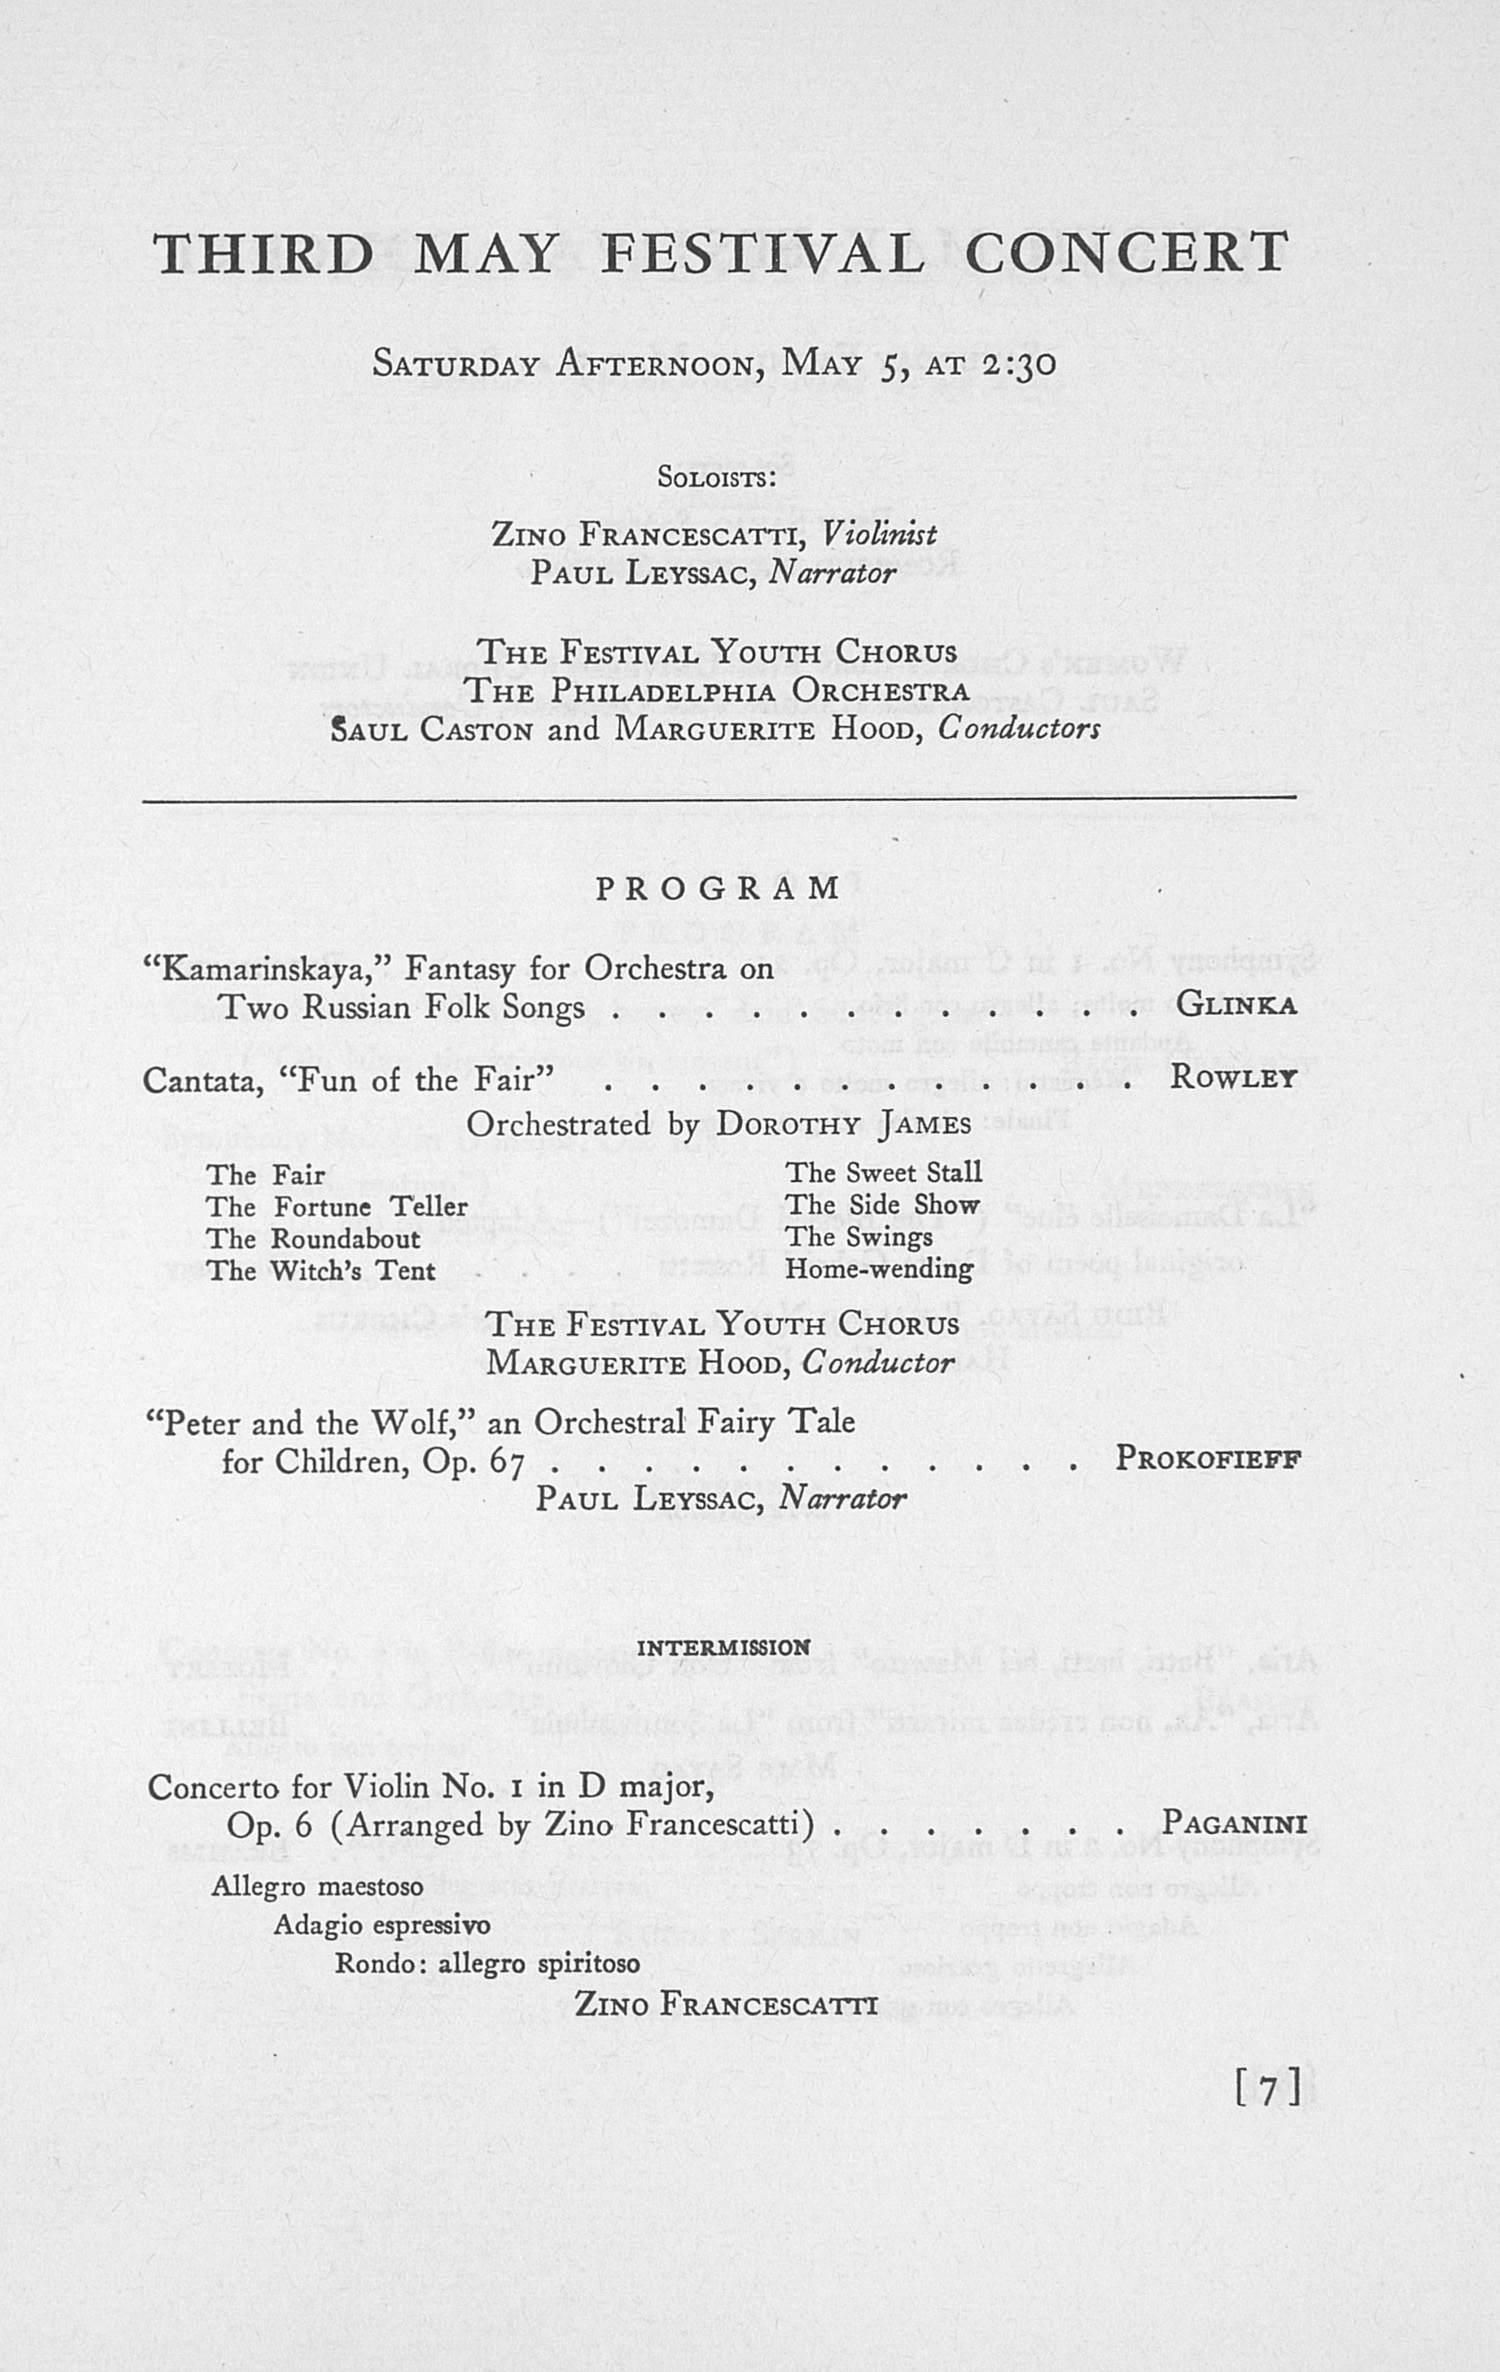 UMS Concert Program, May 3, 4, 5, And 6, 1945: The Fifty-second Annual May Festival -- Glenn D. Mcgeoch image